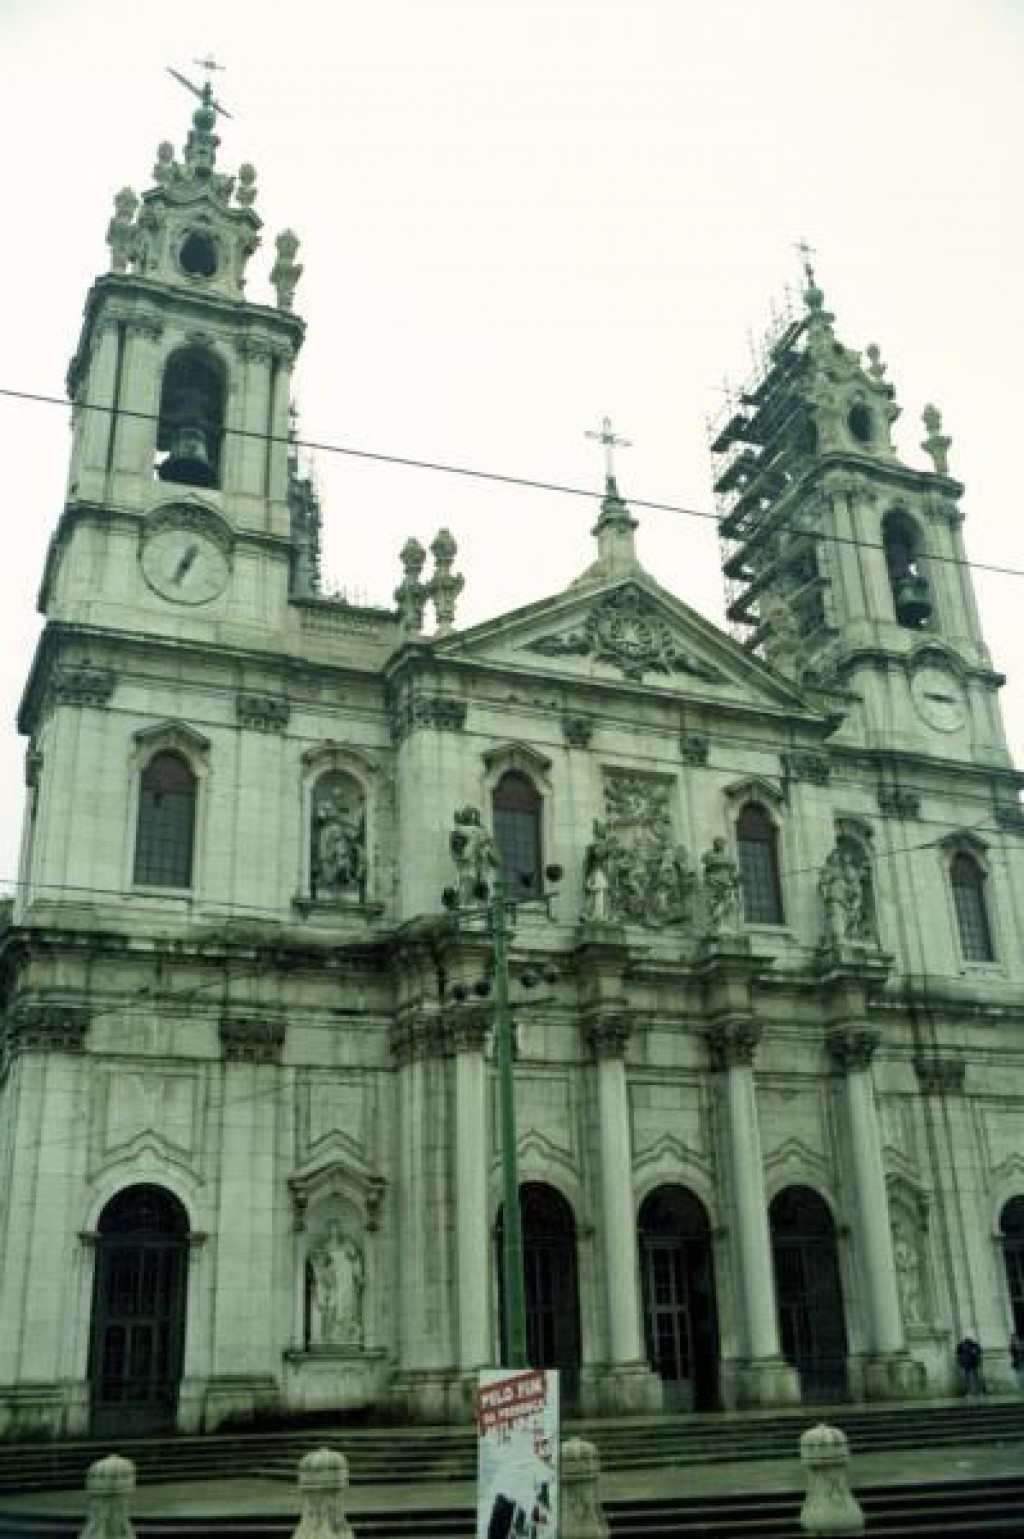 This is the Basilica Estrela, built in 1796 by Maria I who promised God she would build it she were given a son.